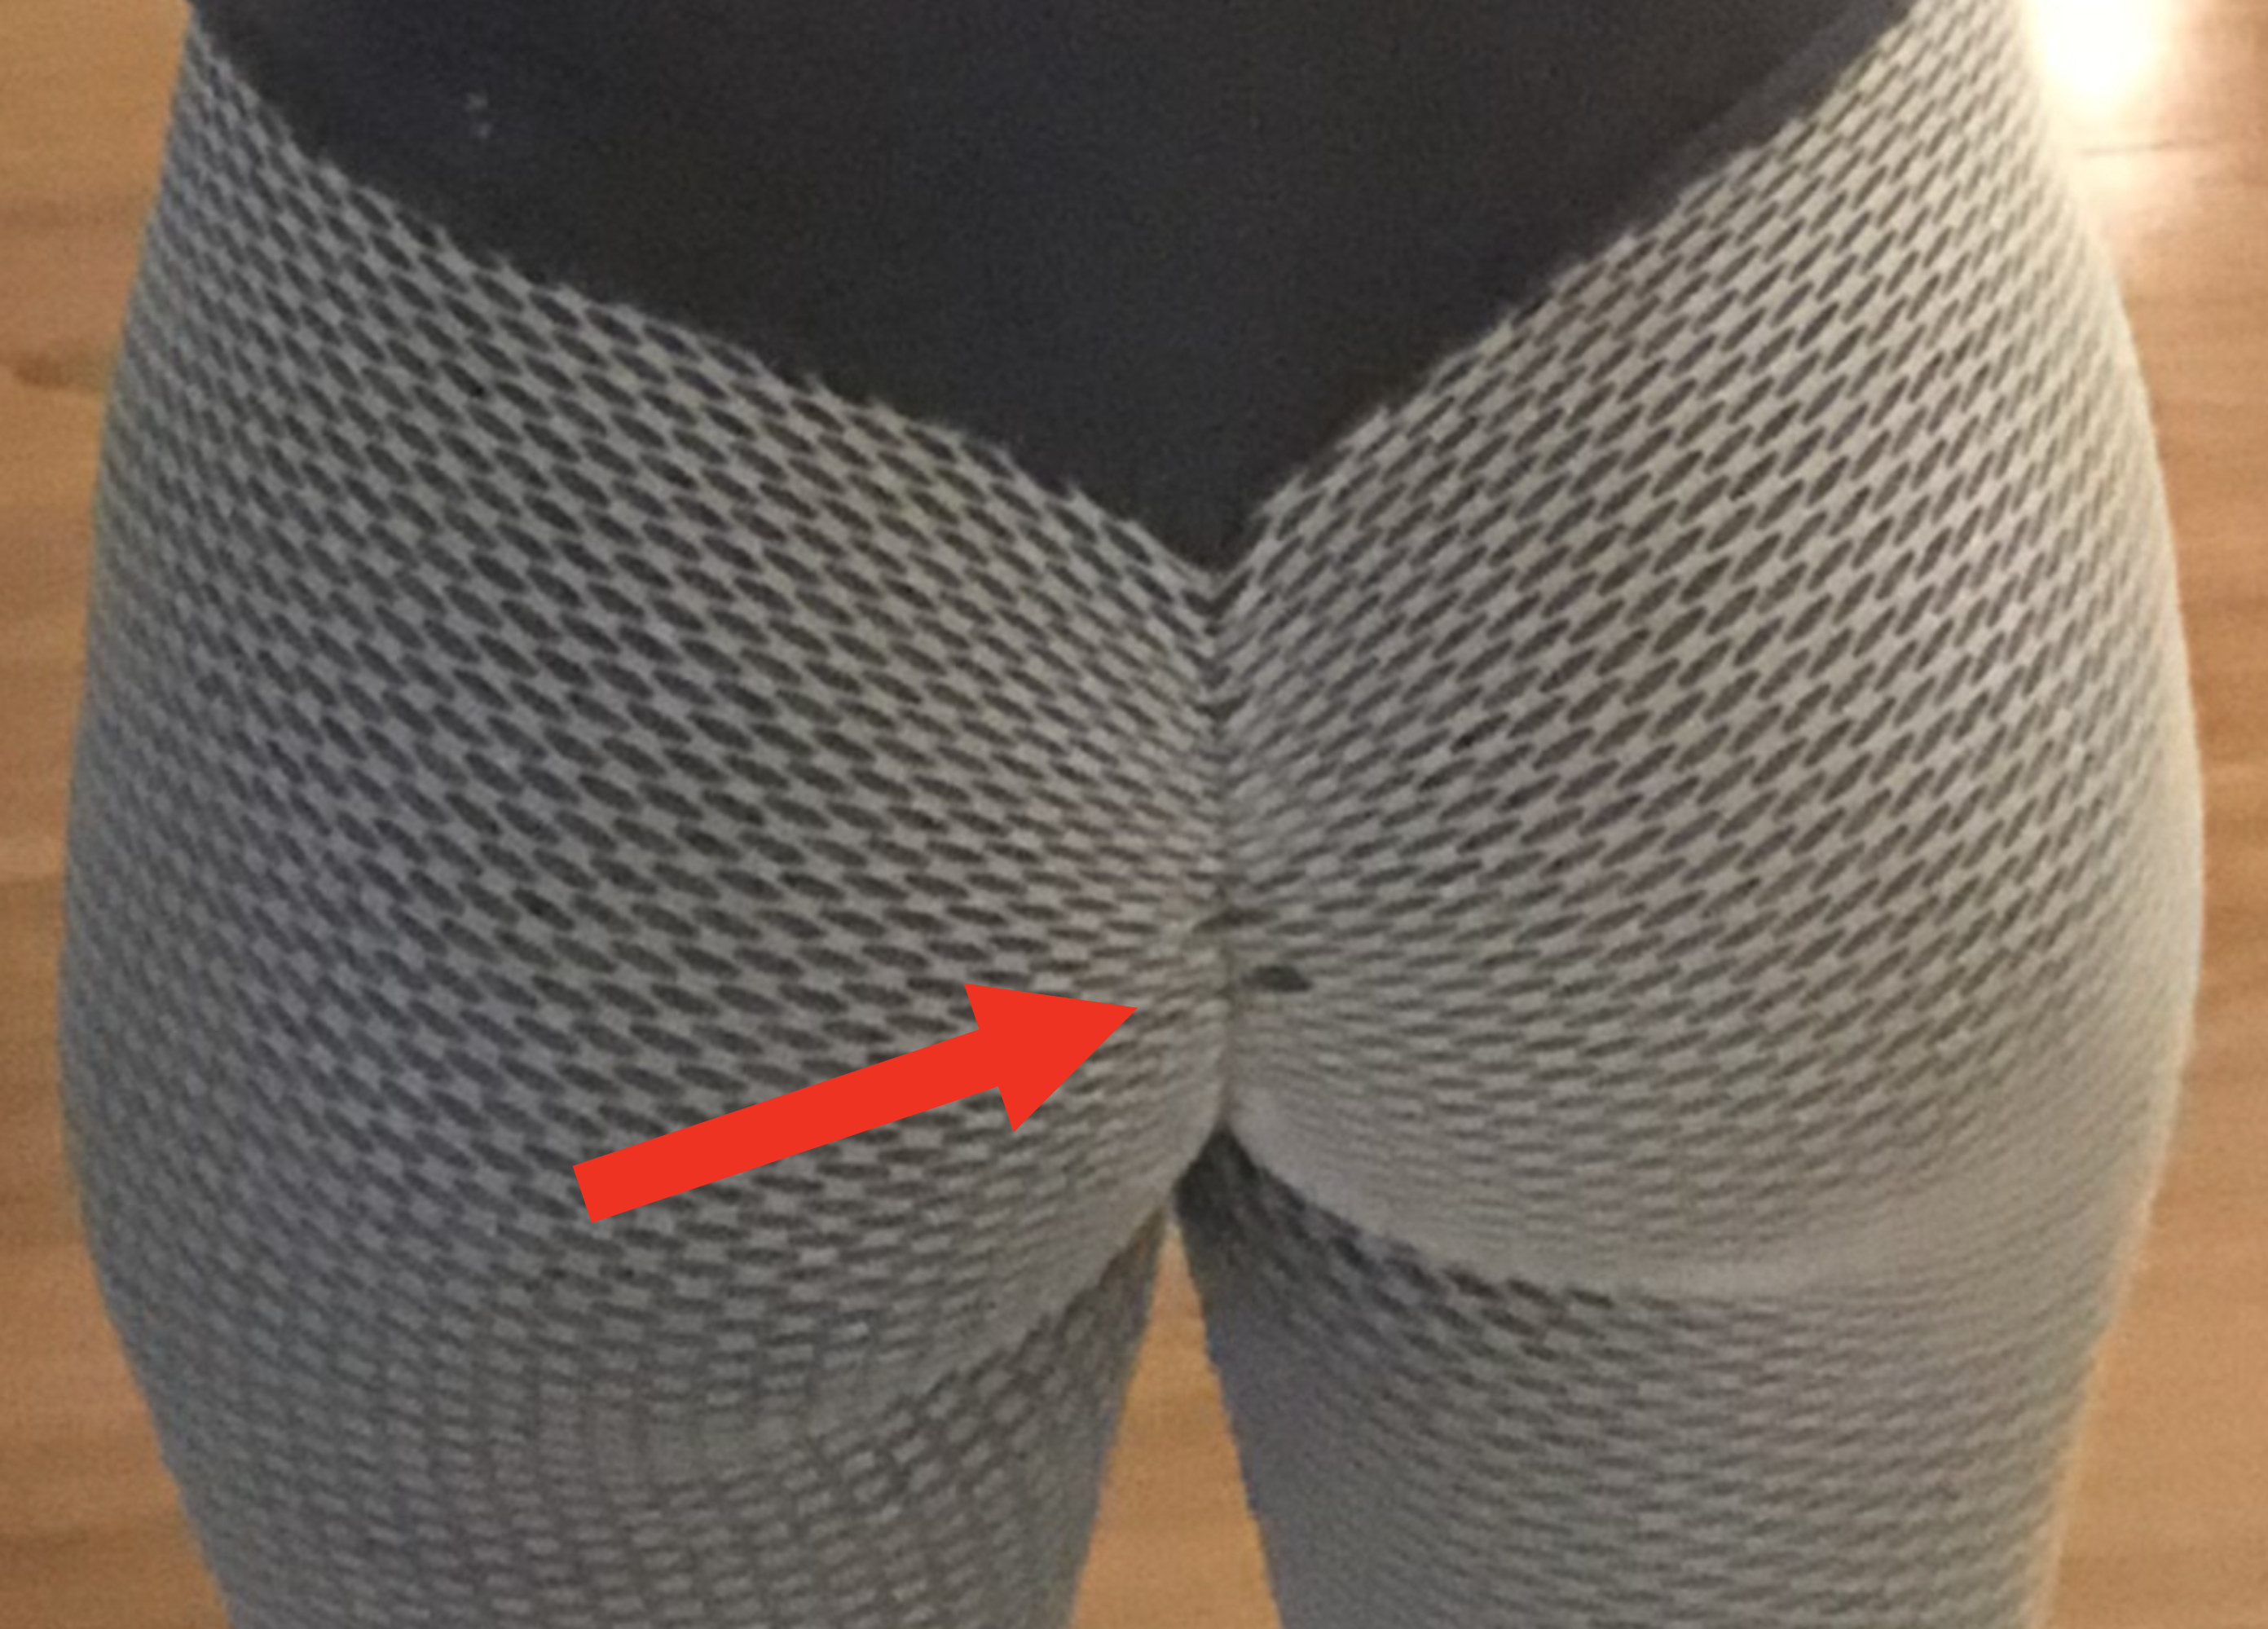 A close up of stretched fabric in the buttcrack area.